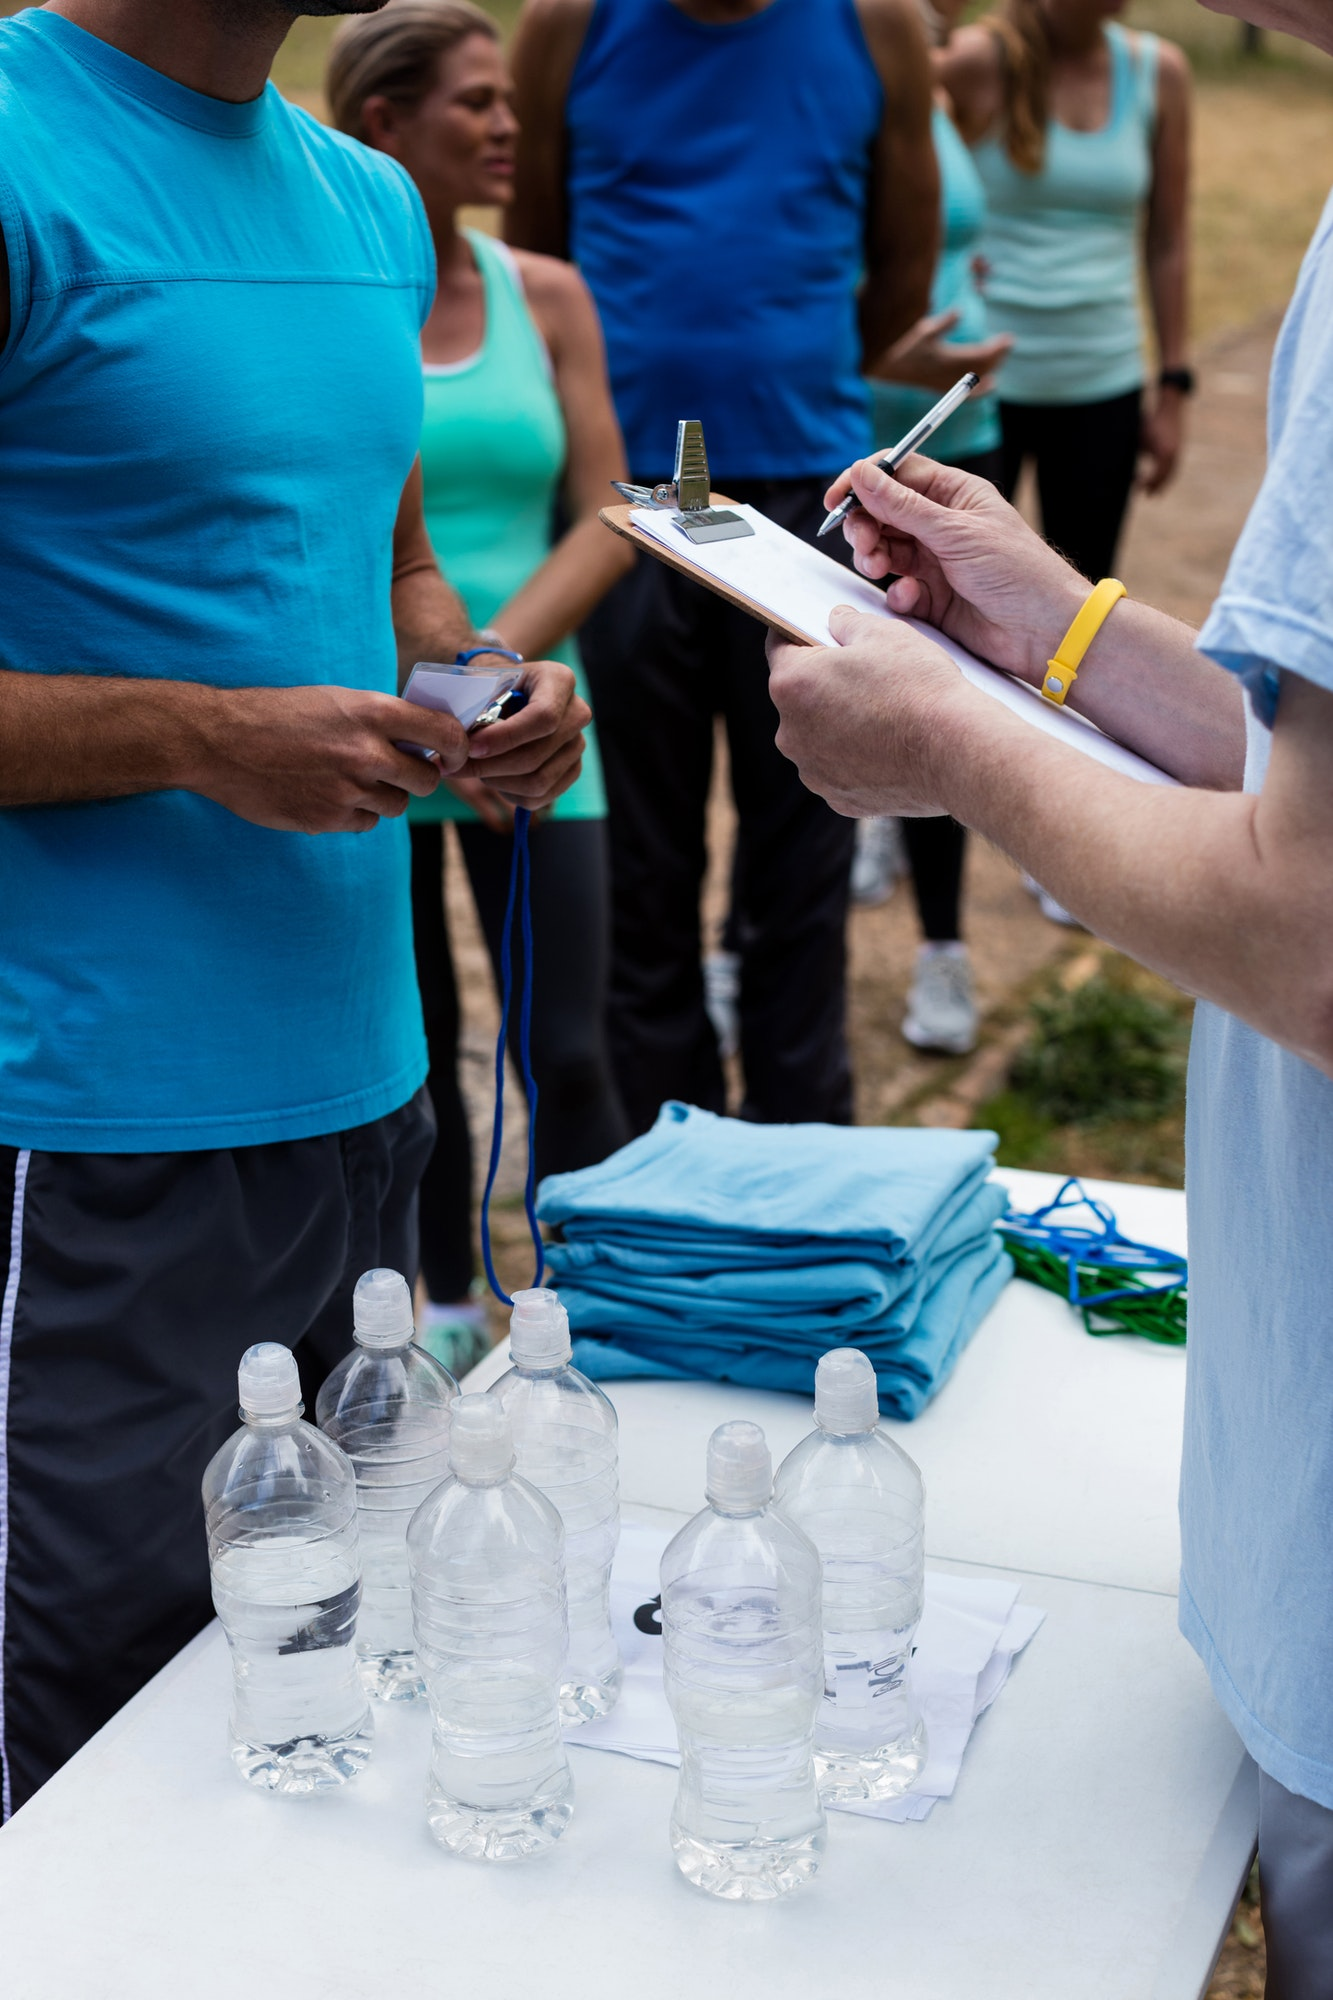 Volunteer registering athletes name for race